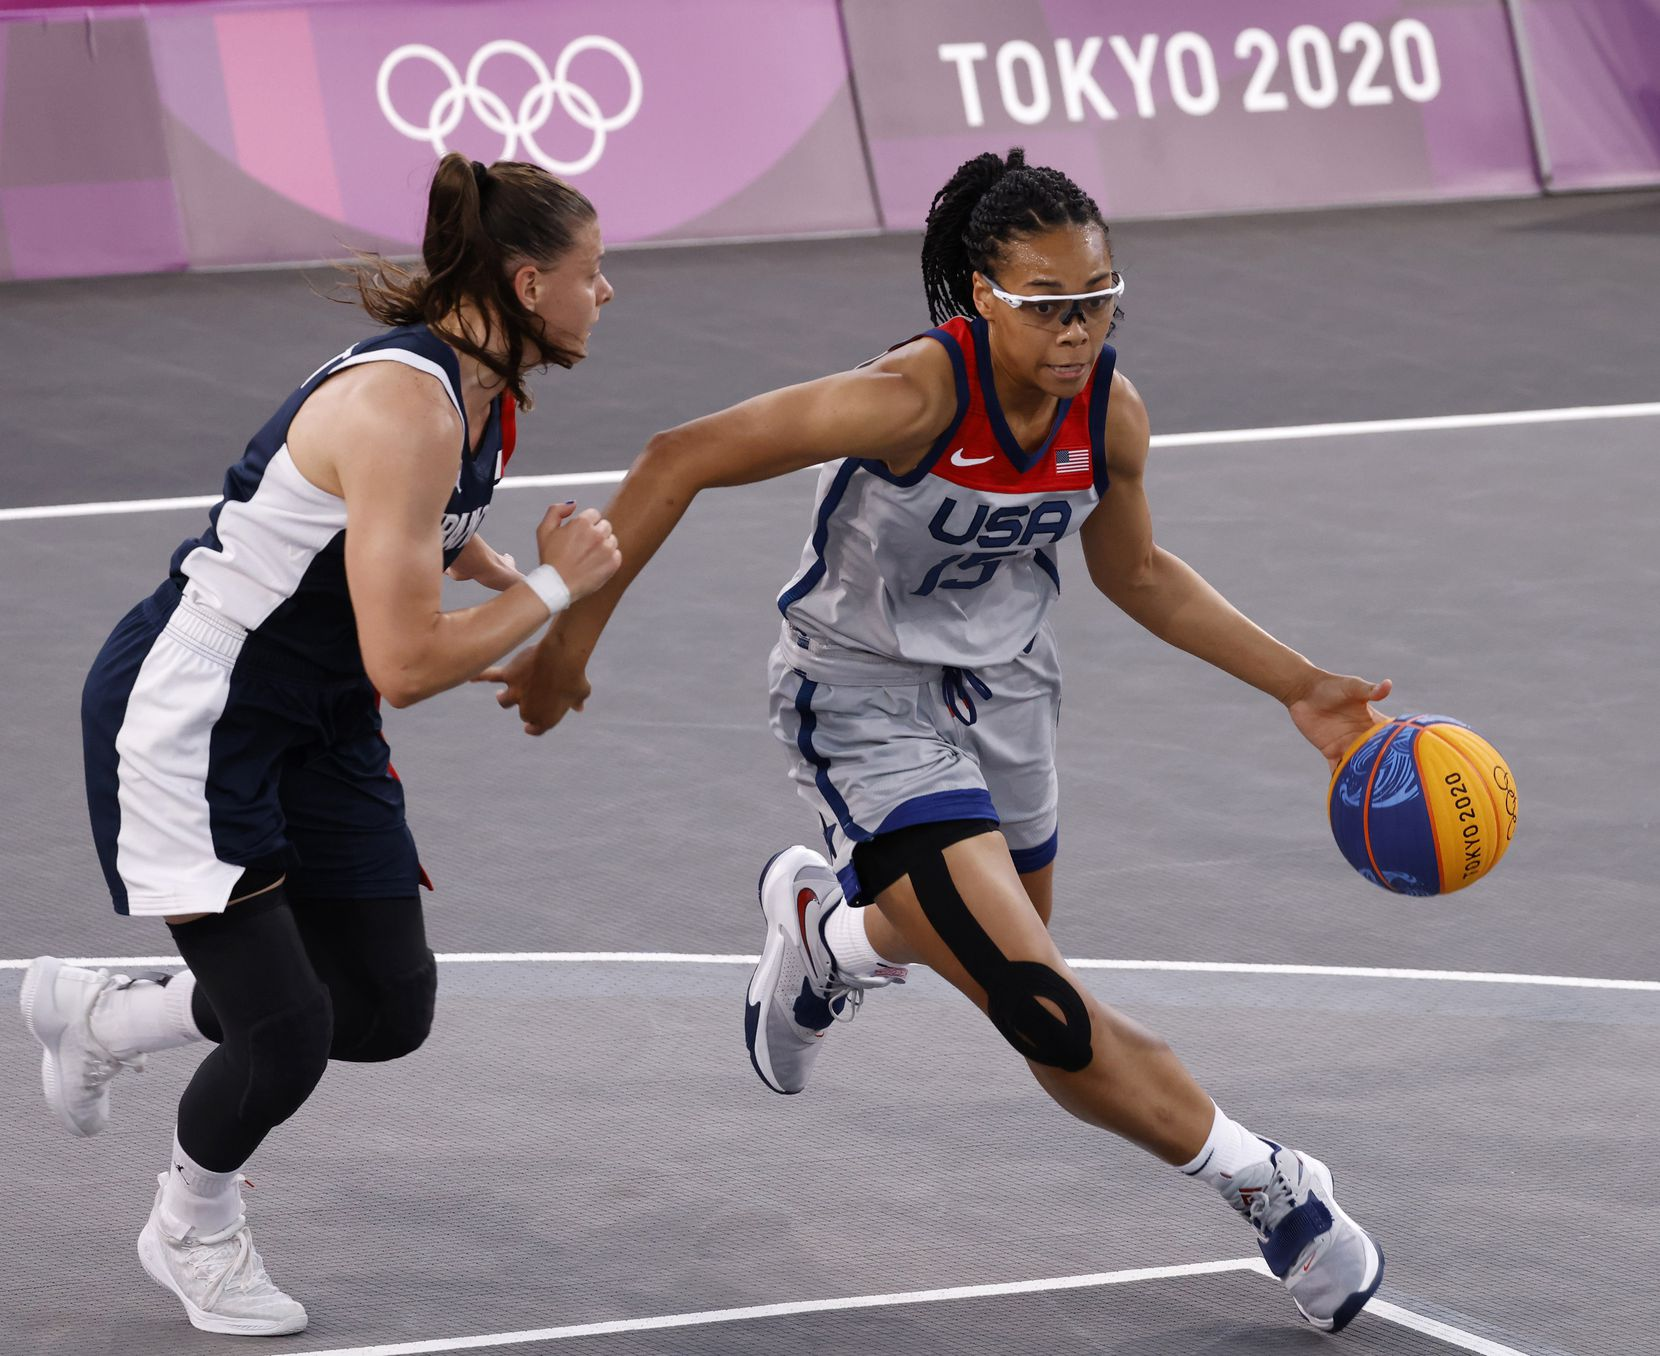 USA's Allisha Gray (15) drives towards the basket as France's Marie-Eve Paget (5) defends during a 3x3 women's basketball game during the postponed 2020 Tokyo Olympics at Aomi Urban Sports Park on Saturday, July 24, 2021, in Tokyo, Japan. USA defeated France 17-10 in the game. (Vernon Bryant/The Dallas Morning News)